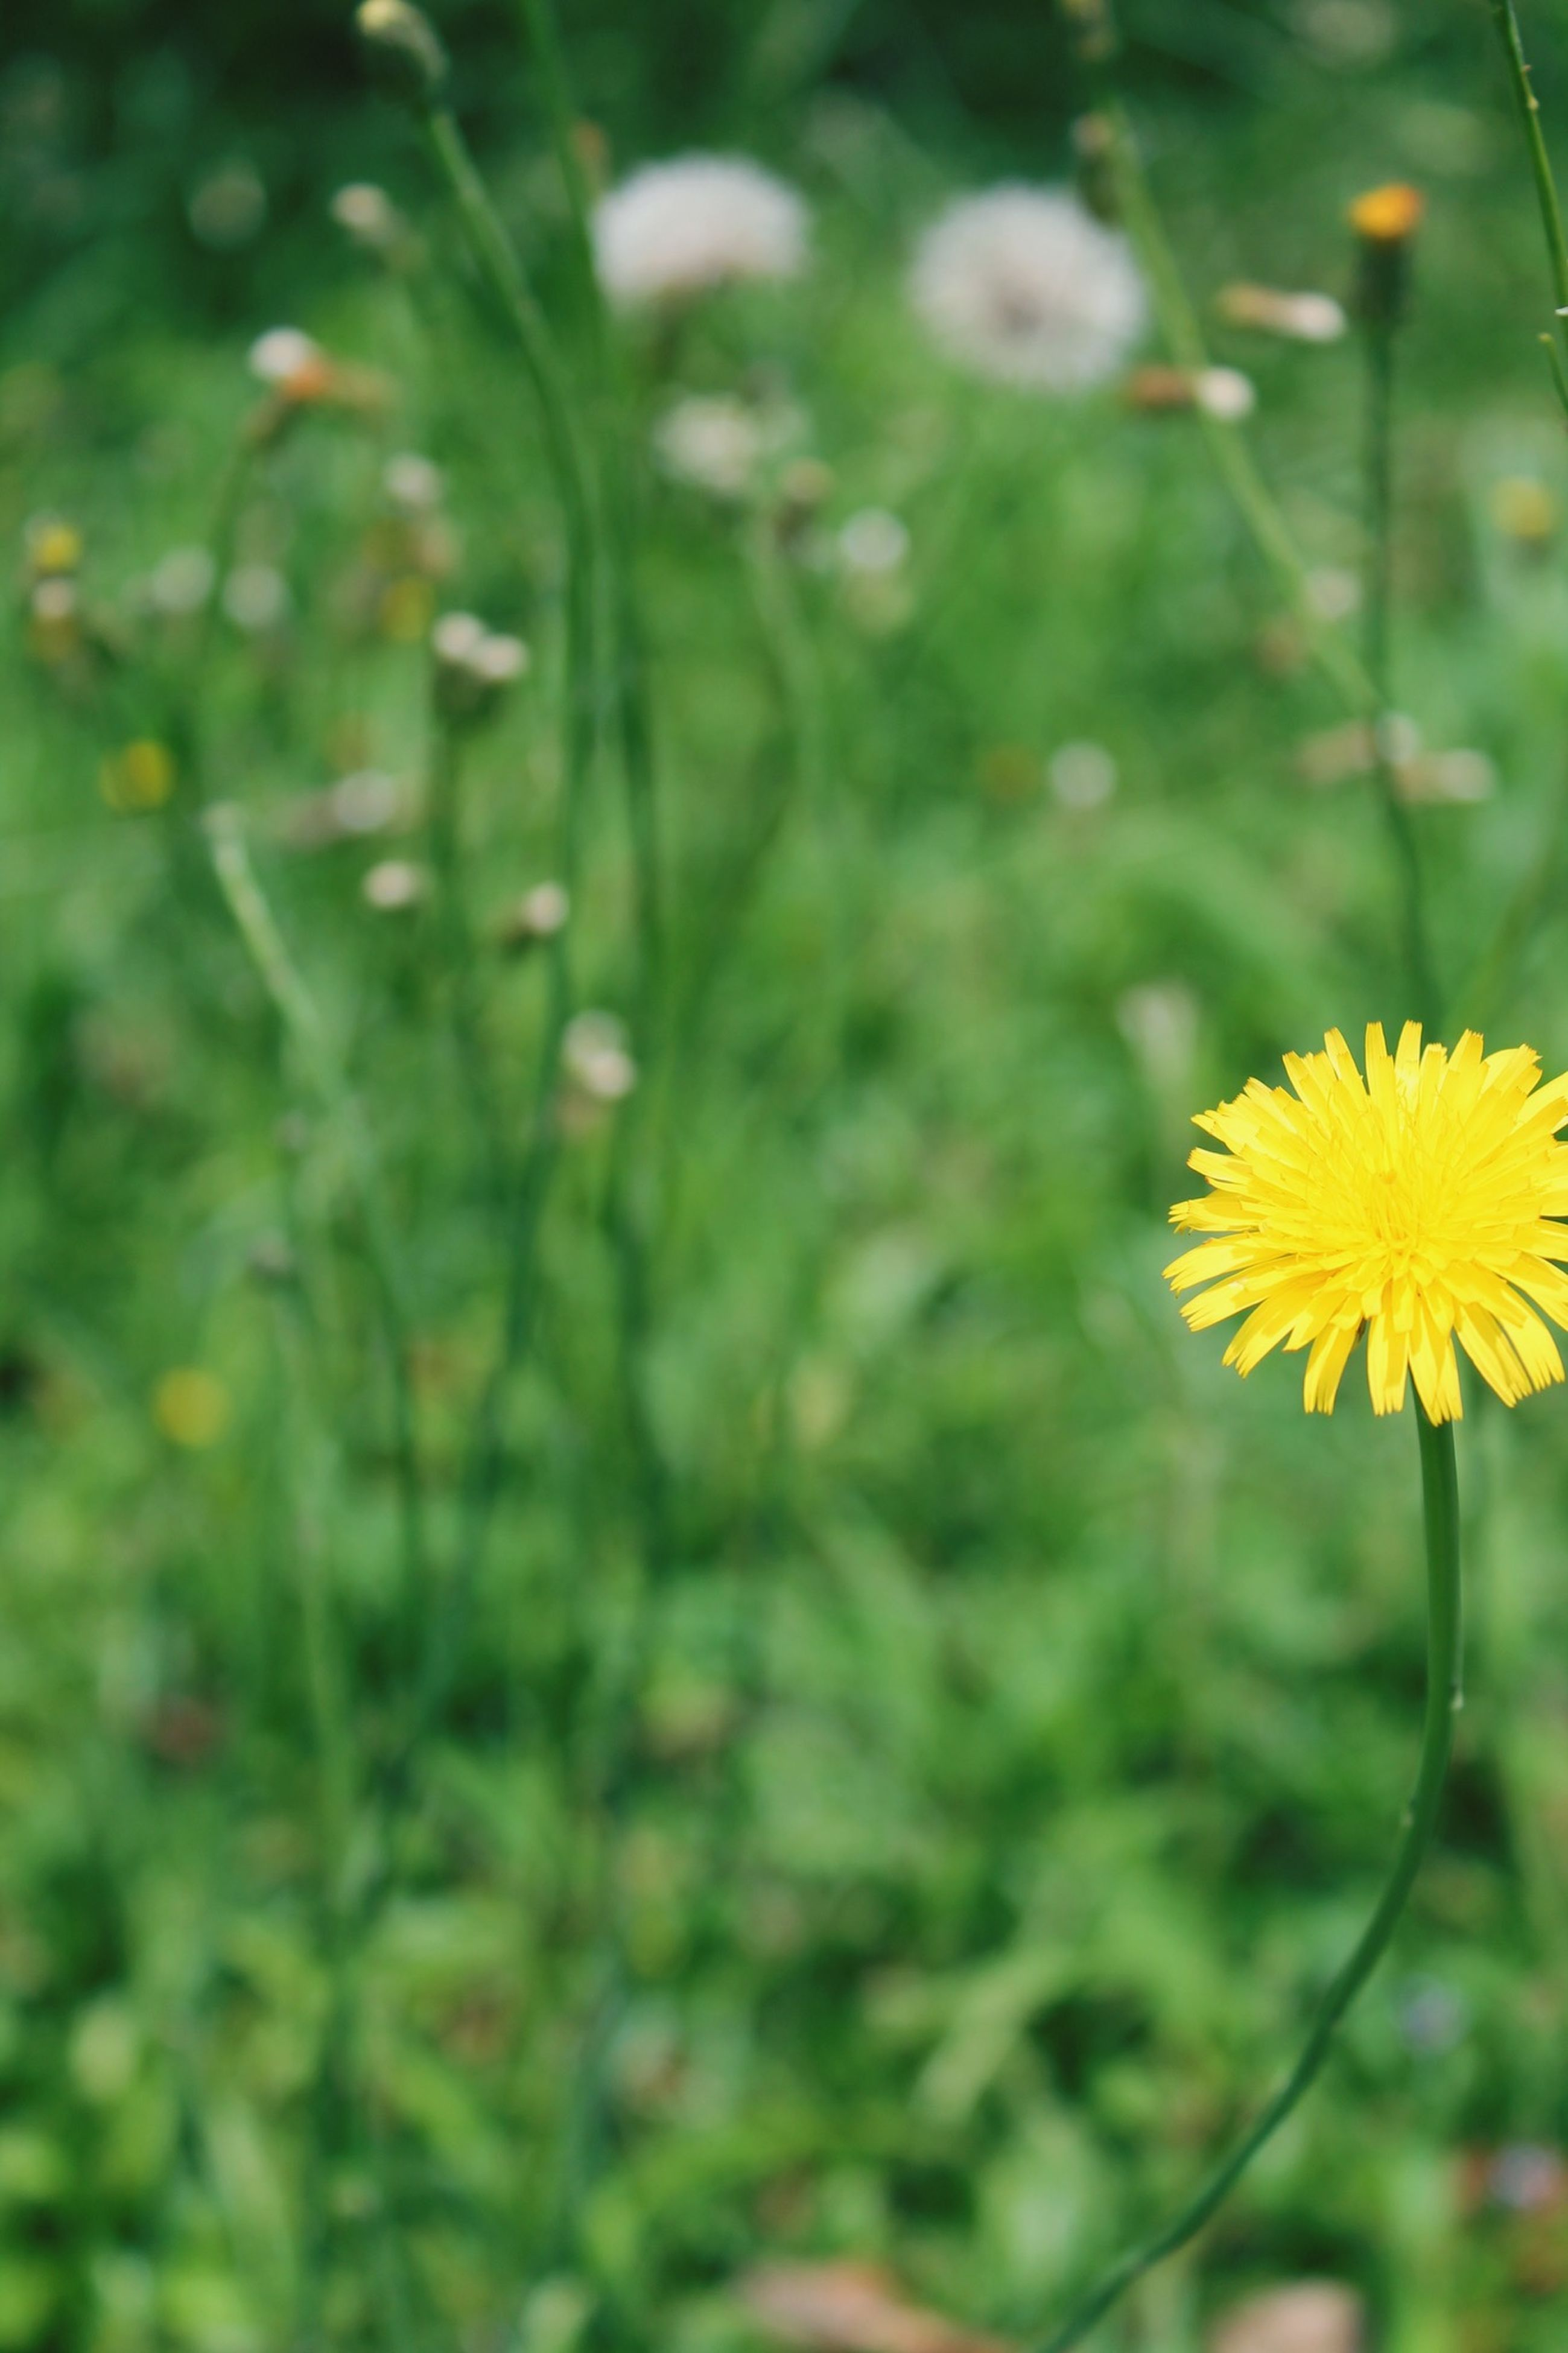 flower, freshness, growth, fragility, yellow, petal, beauty in nature, plant, flower head, nature, focus on foreground, blooming, close-up, stem, selective focus, in bloom, outdoors, field, wildflower, day